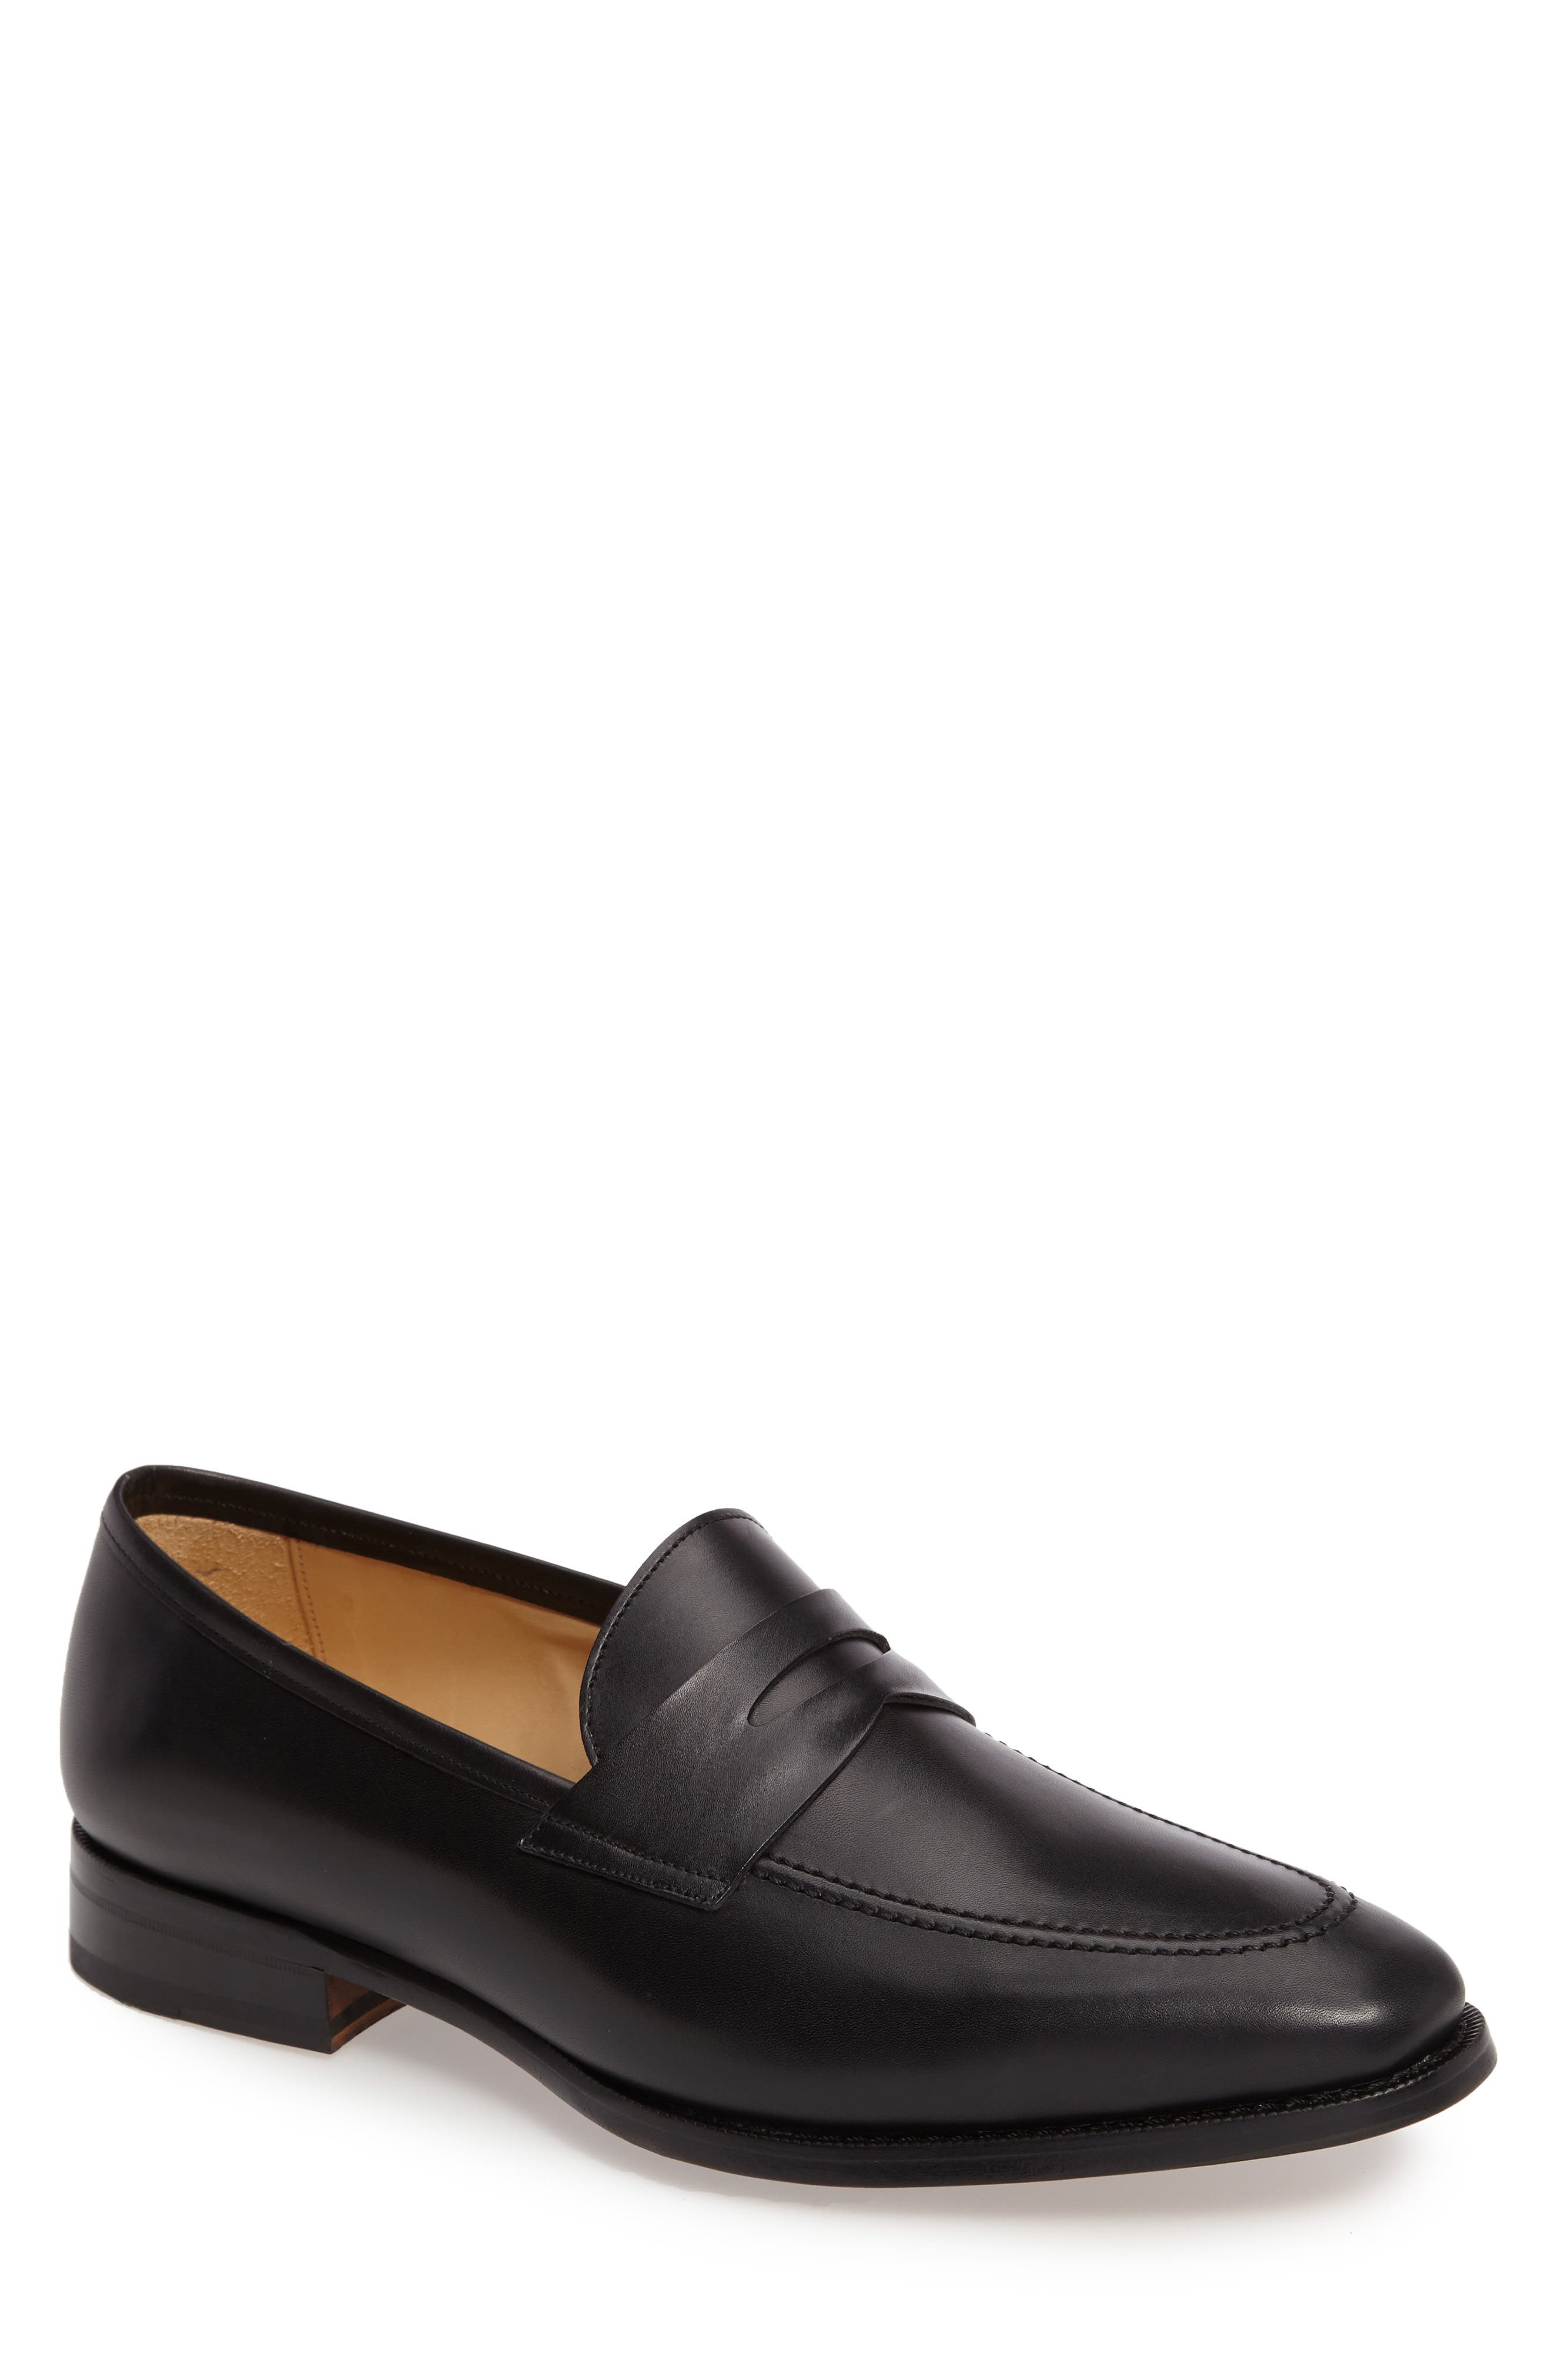 Abe Penny Loafer,                         Main,                         color, BLACK LEATHER